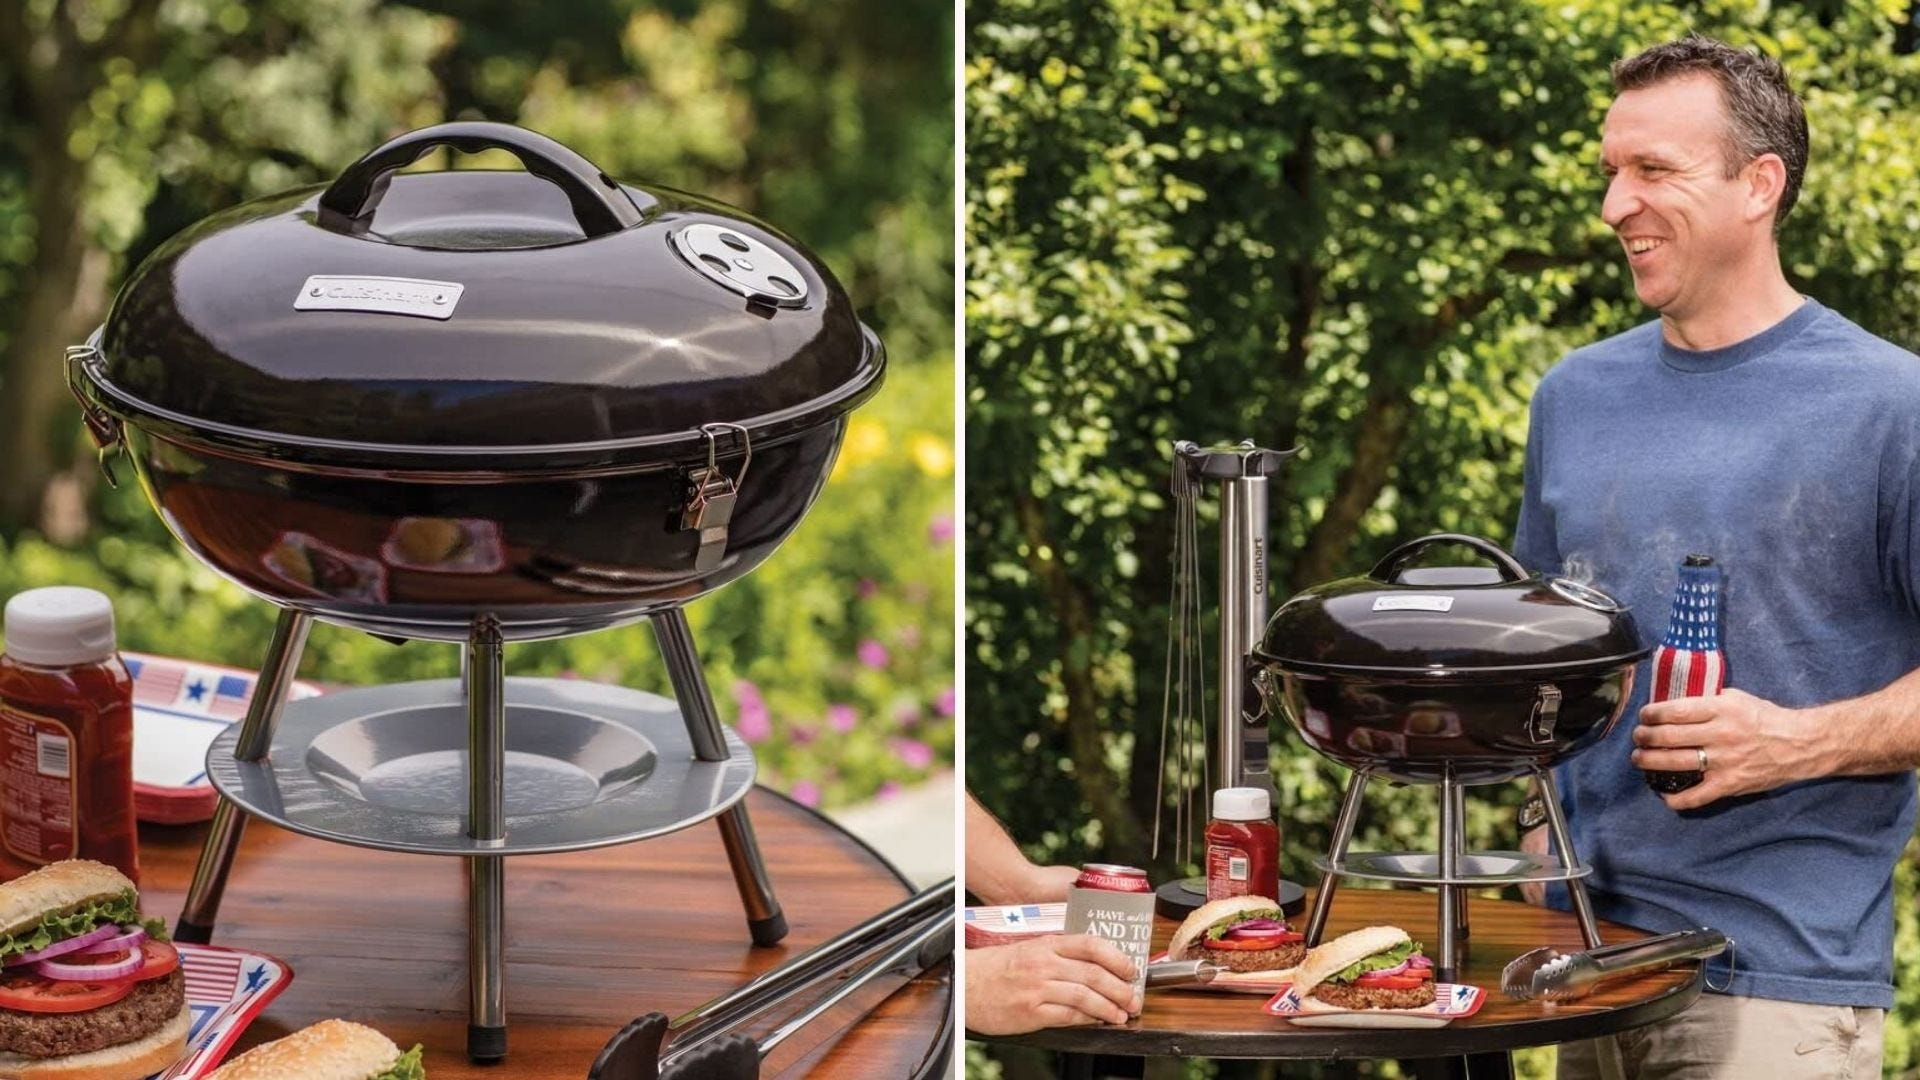 Cuisinart compact portable 14 inch charcoal grill with ash catcher, 150 square inch grate